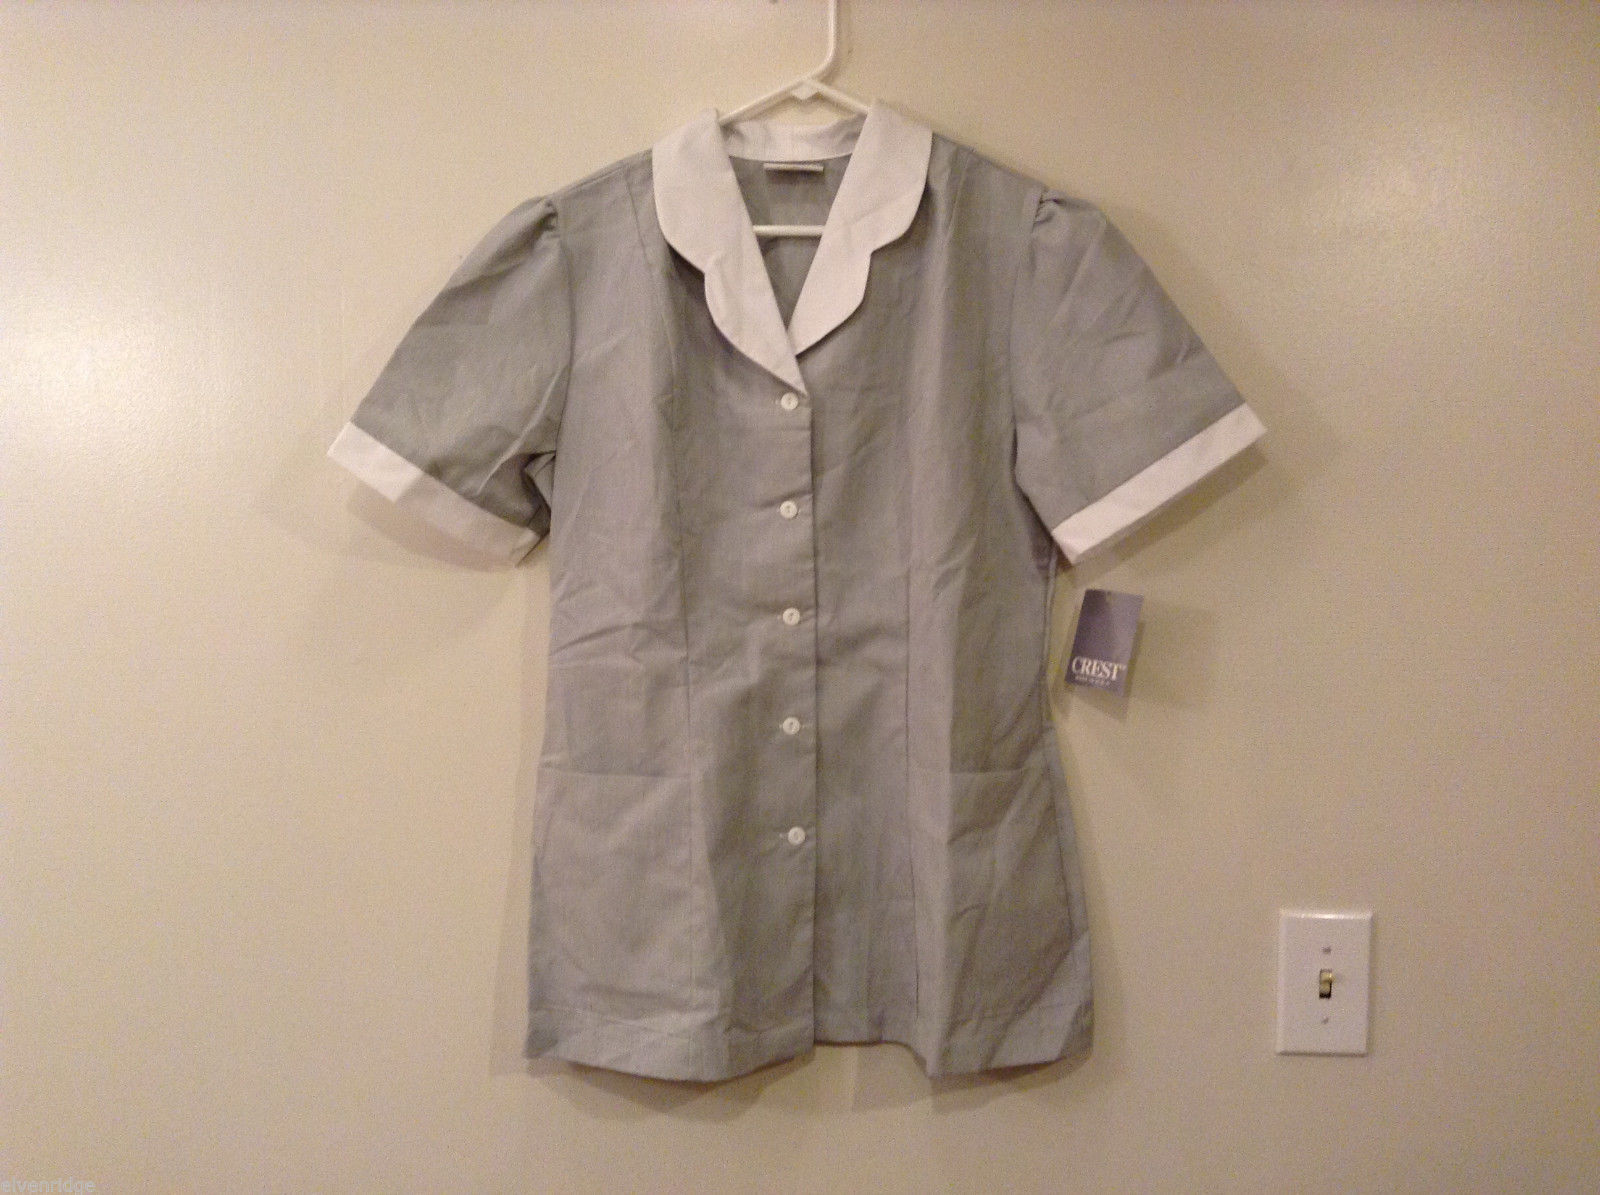 Crest Gray White Front Buttons Closure Womens Scrub Top, Size 14